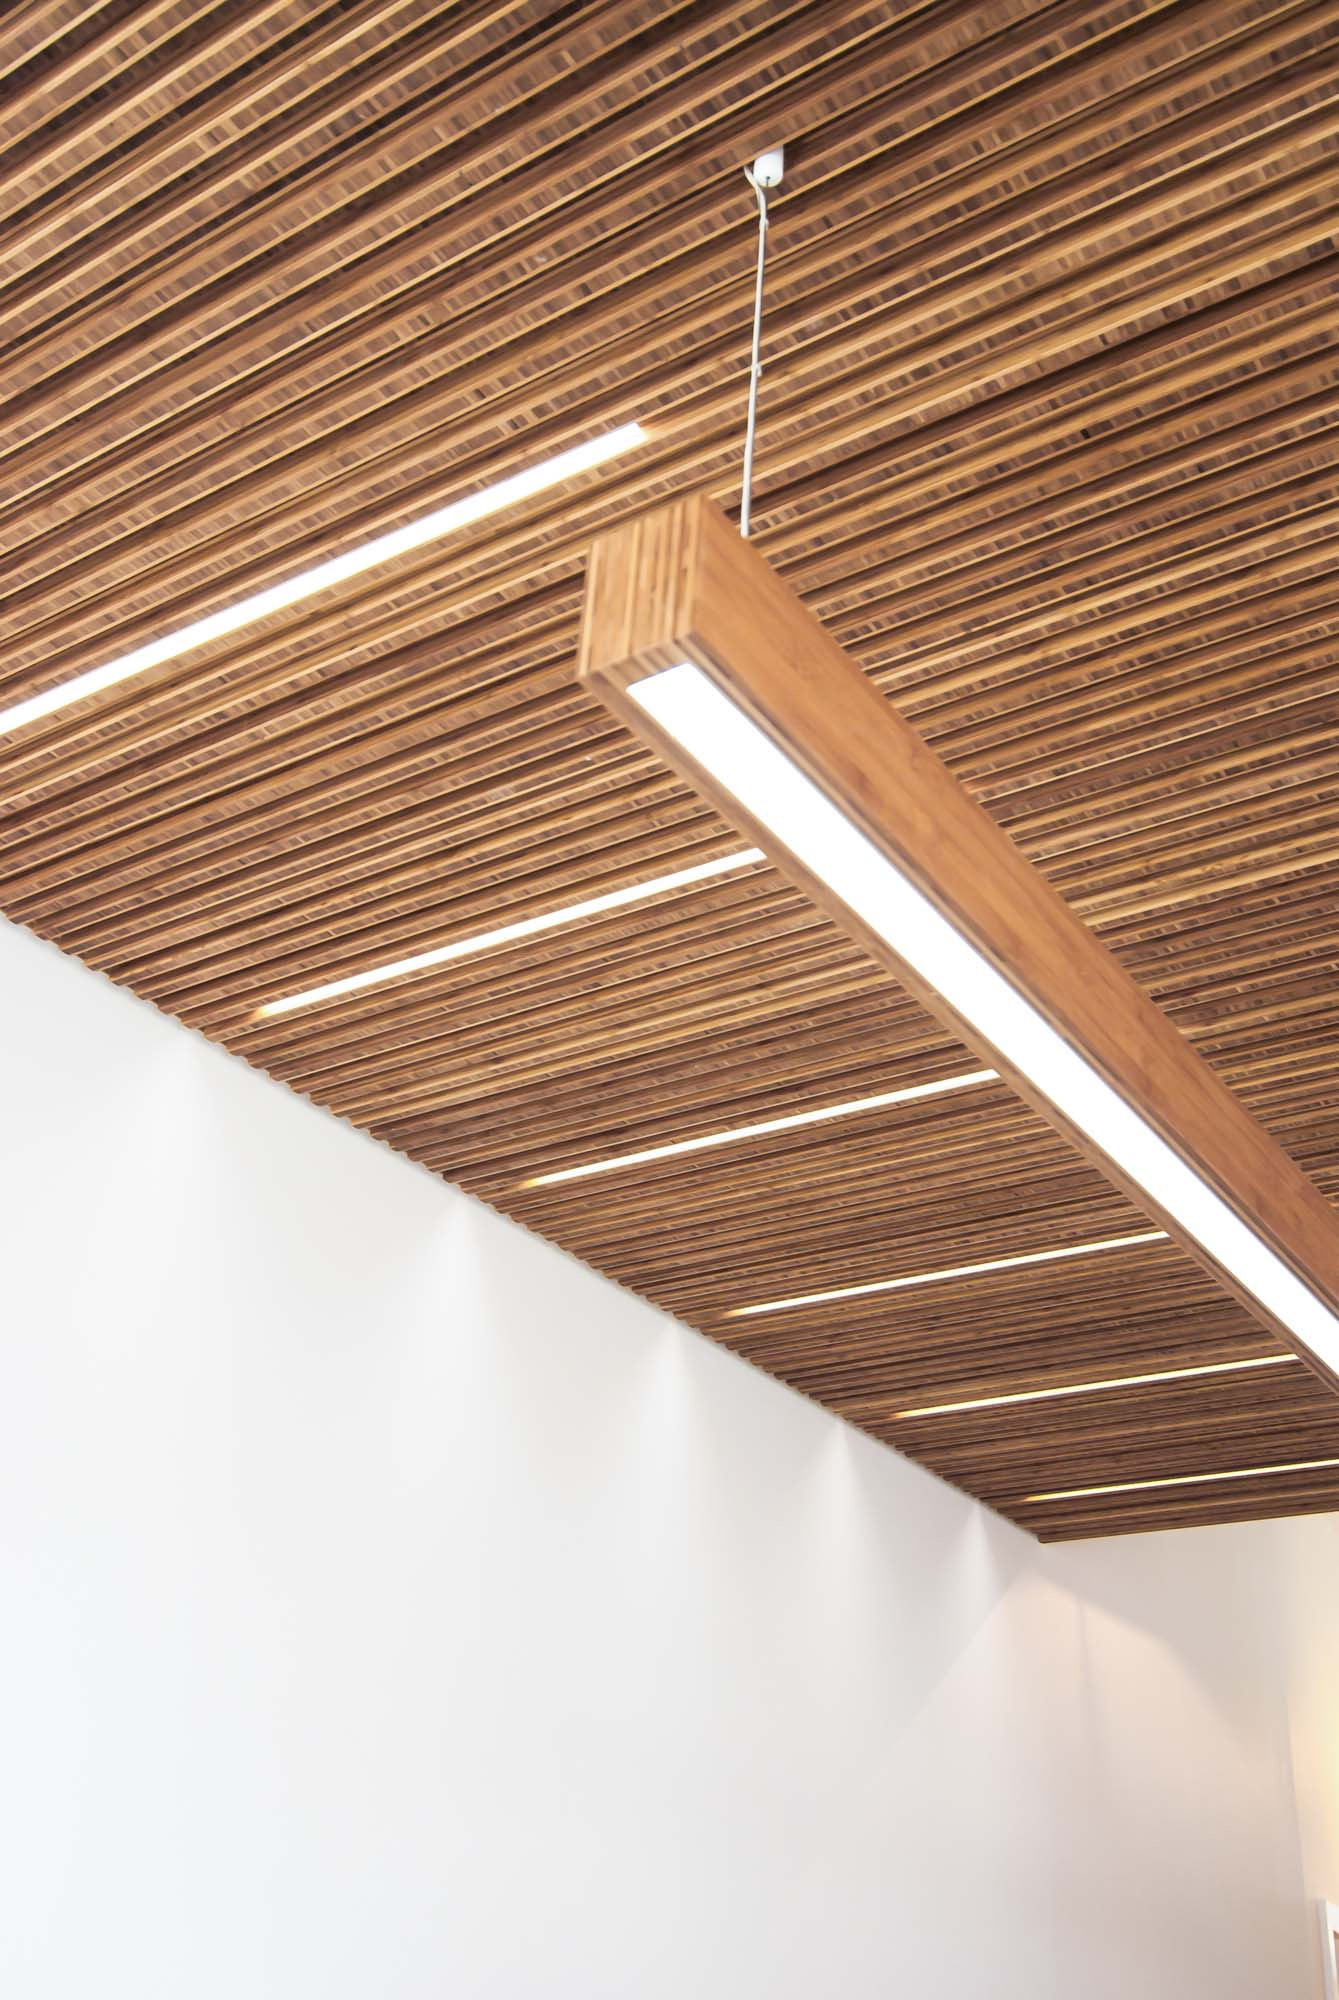 A close up of the Bamboo Plyboo joinery along LED light strips incorporated in the ceiling.